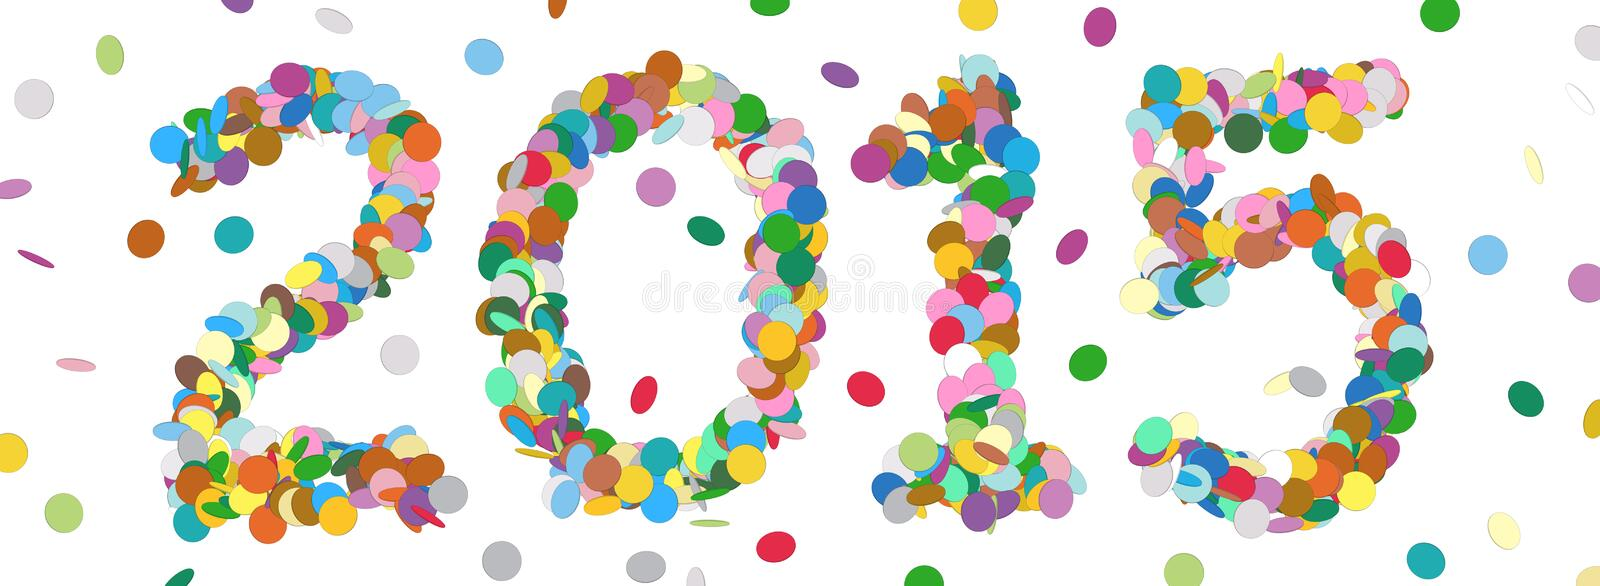 Abstract Confetti Year Date - 2015 vector illustration